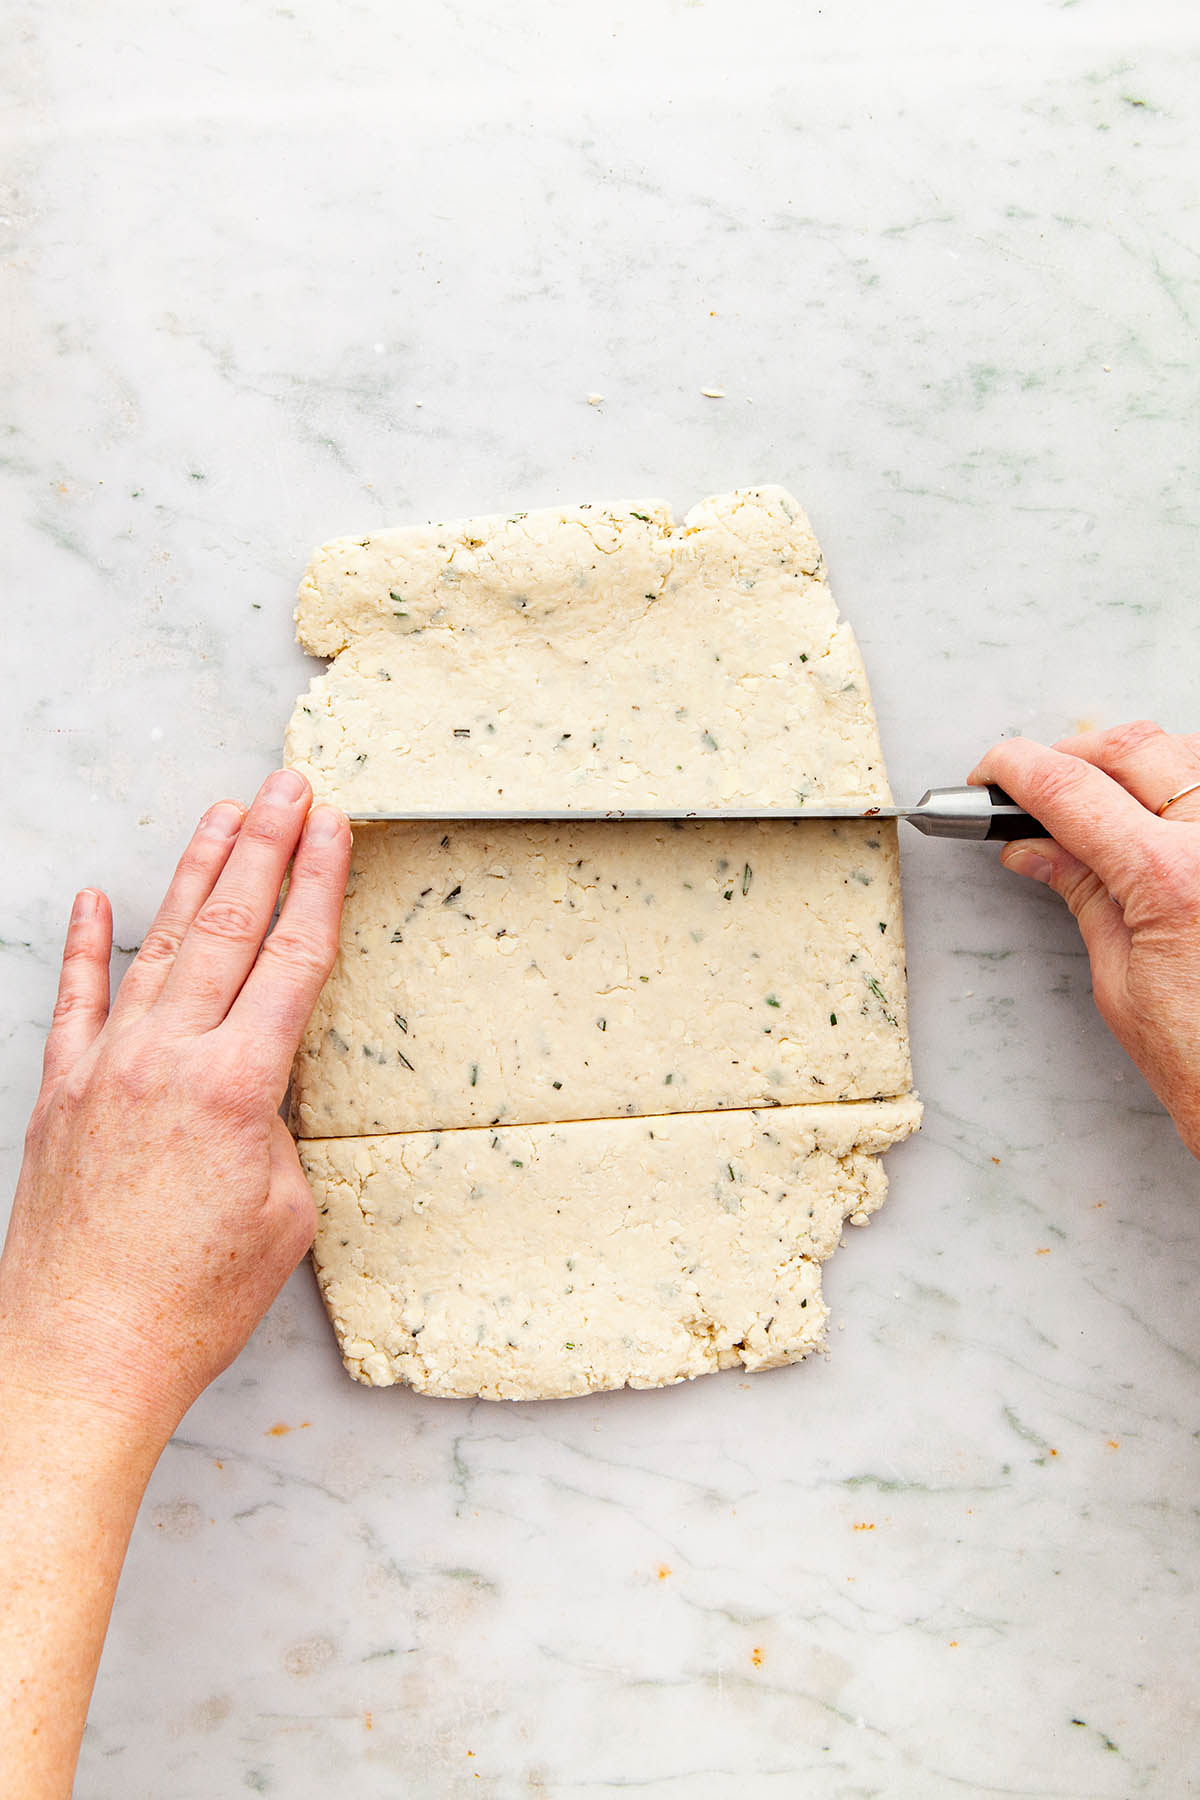 Hands using a long knife to slice dough into thirds.